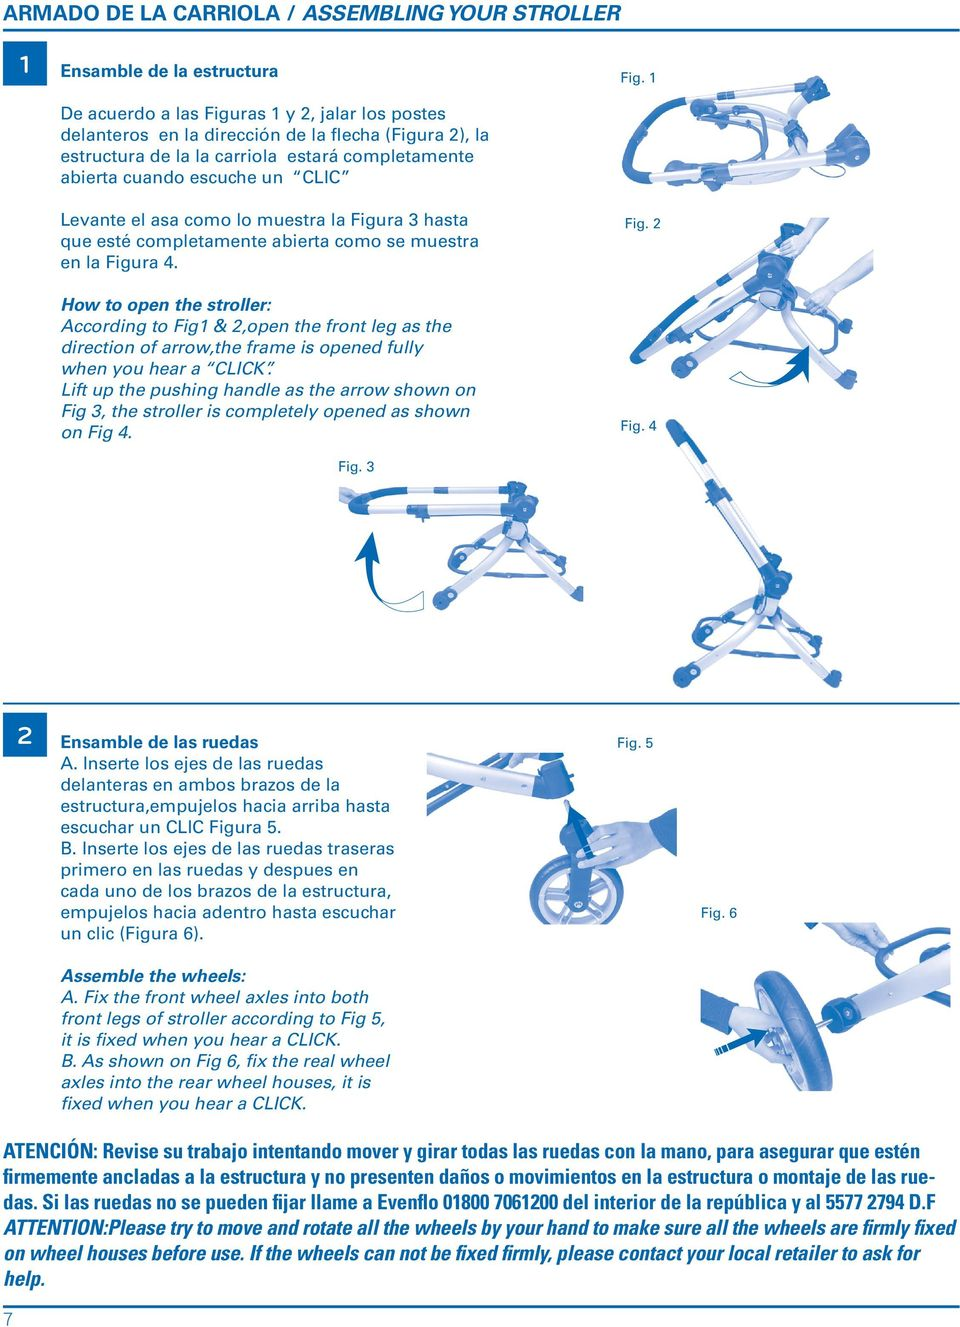 asa como lo muestra la Figura 3 hasta que esté completamente abierta como se muestra en la Figura 4. Fig. 2 How to open the stroller: According to Fig1 & 2,open the front leg as the direction of arrow,the frame is opened fully when you hear a CLICK.